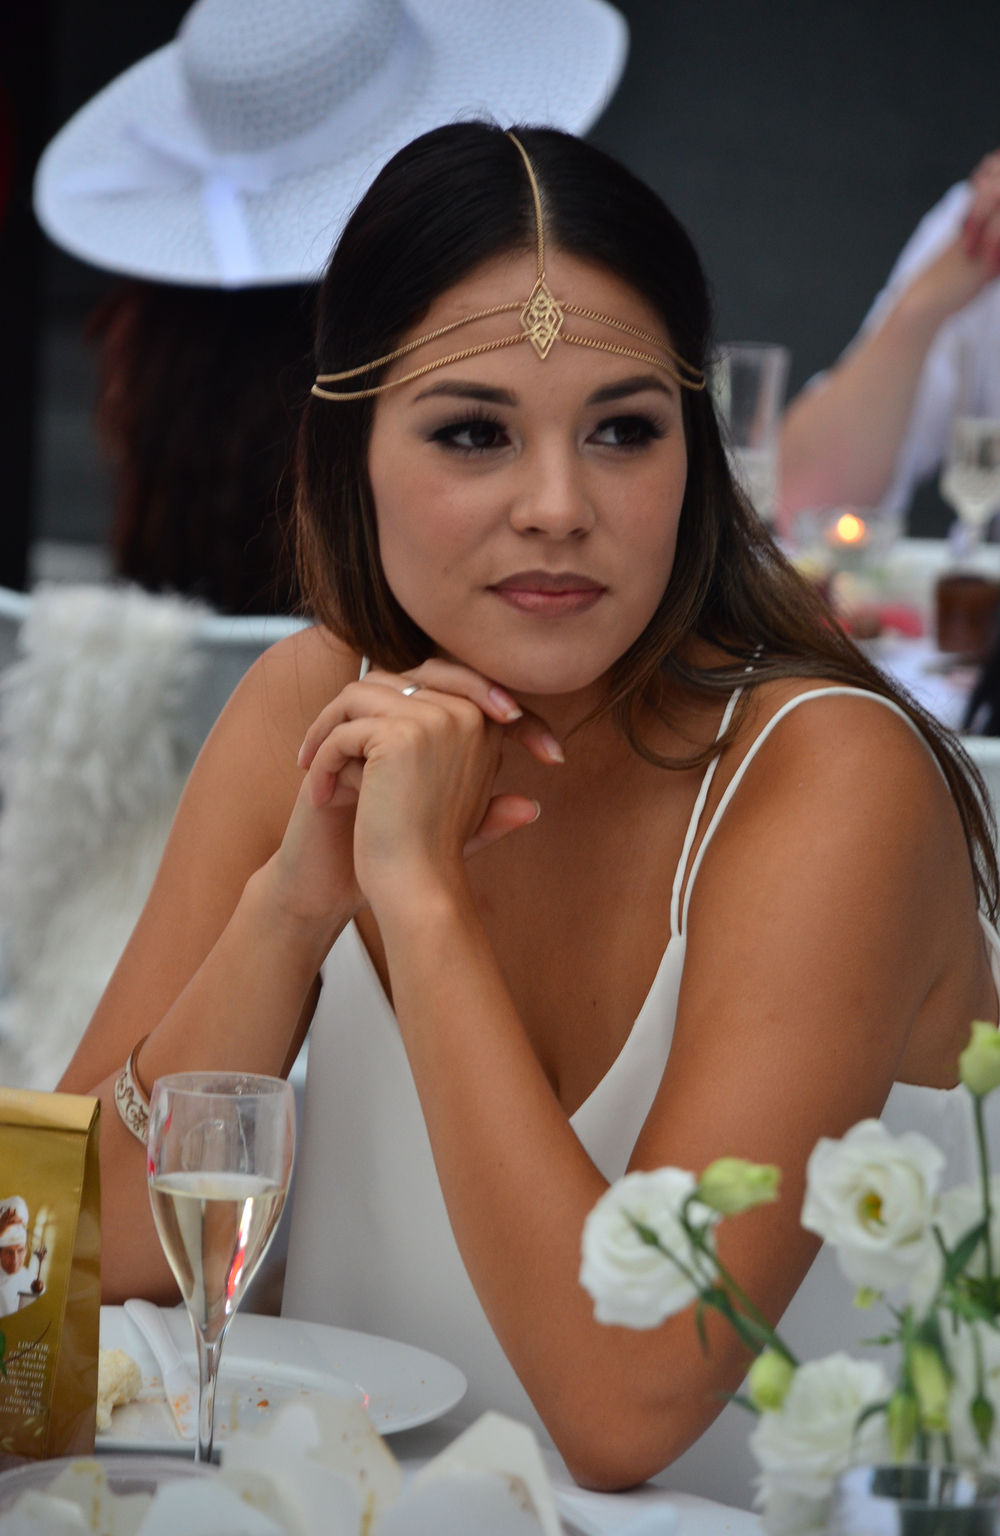 diner en blanc auckland beautiful girl